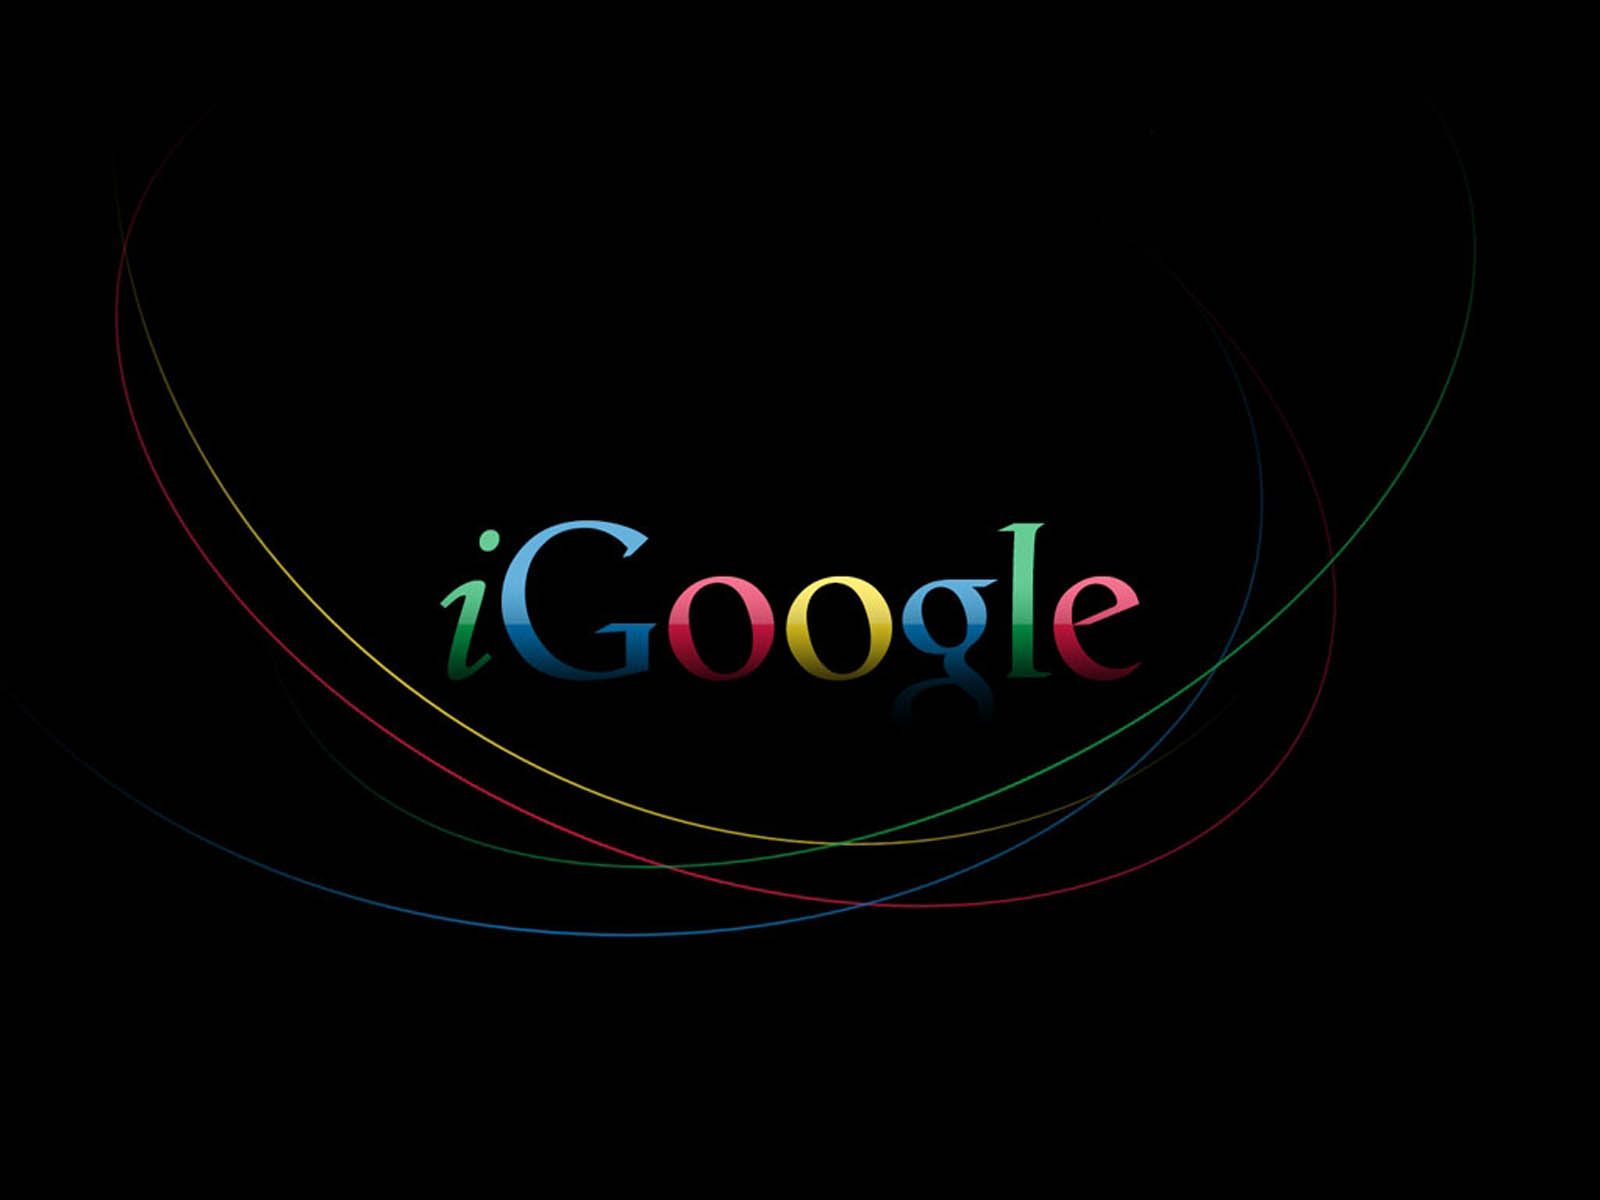 wallpaper Google Backgrounds And Wallpapers 1600x1200